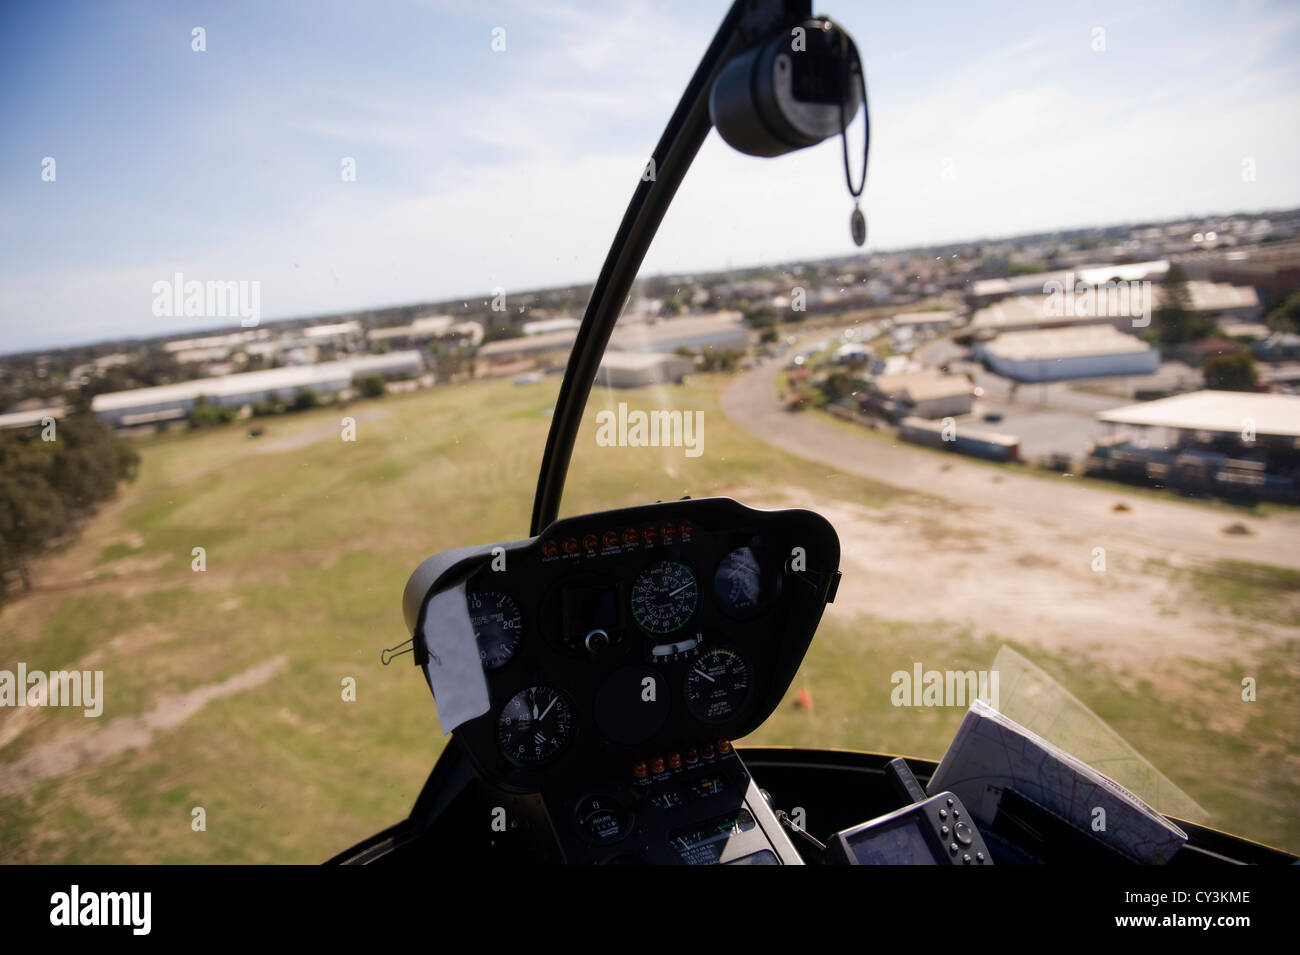 View from a helicopter cockpit - Stock Image